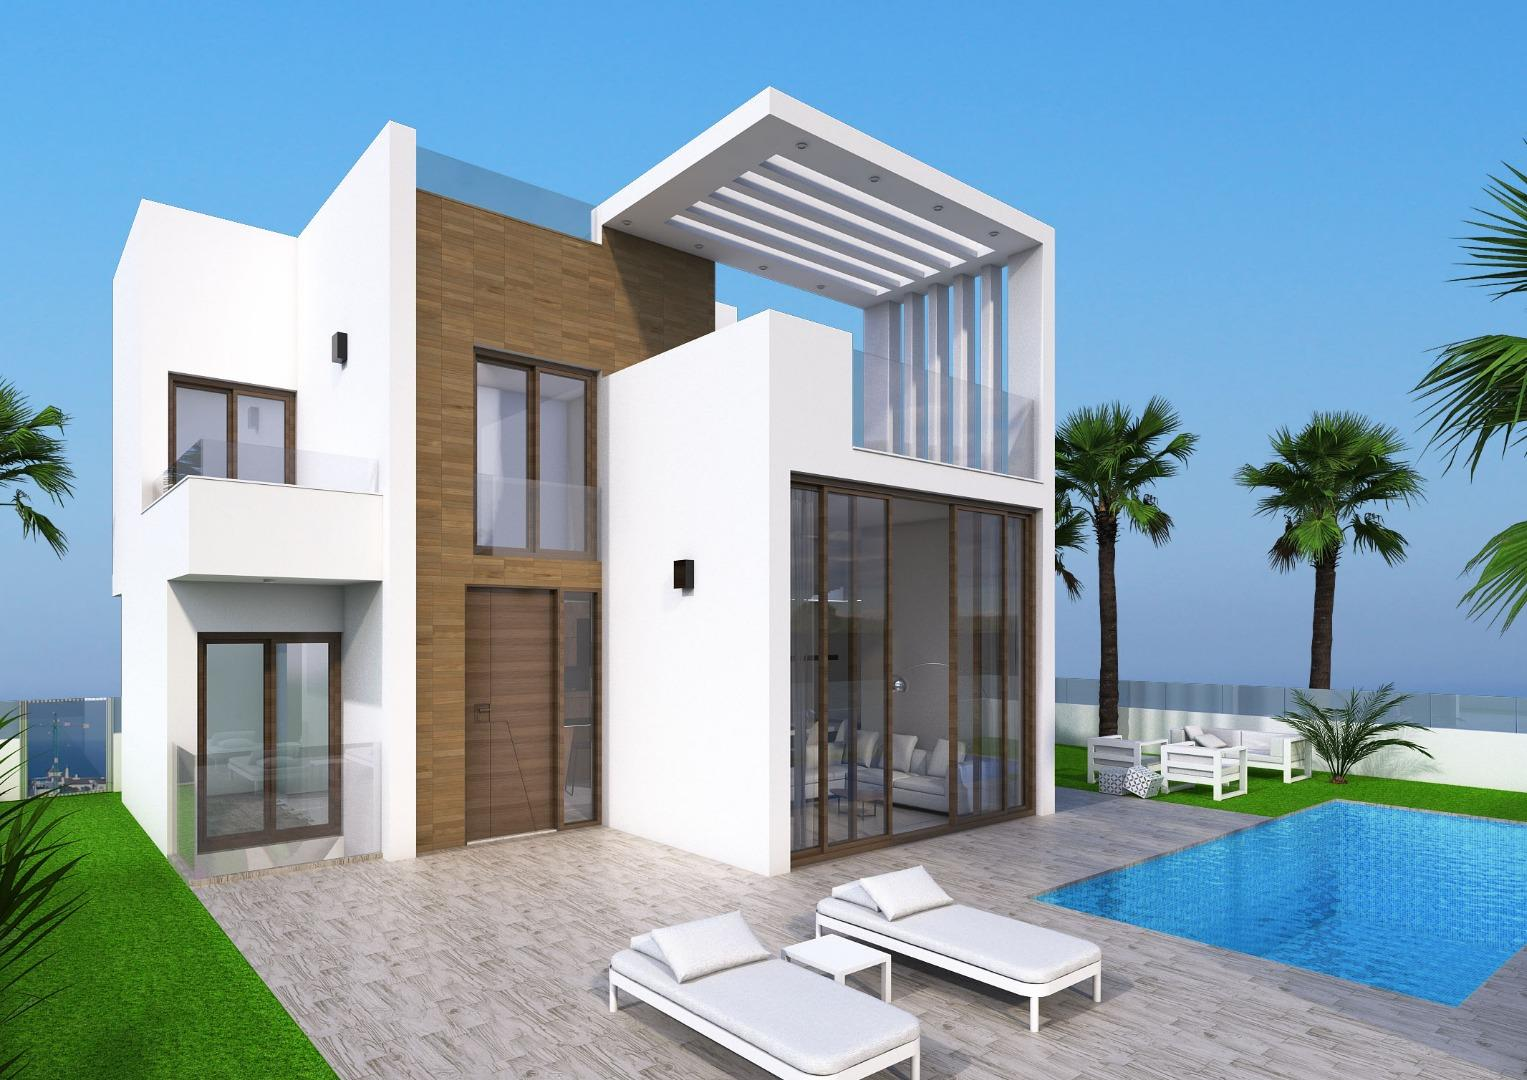 Villa for sale in Torrevieja for € 349,900